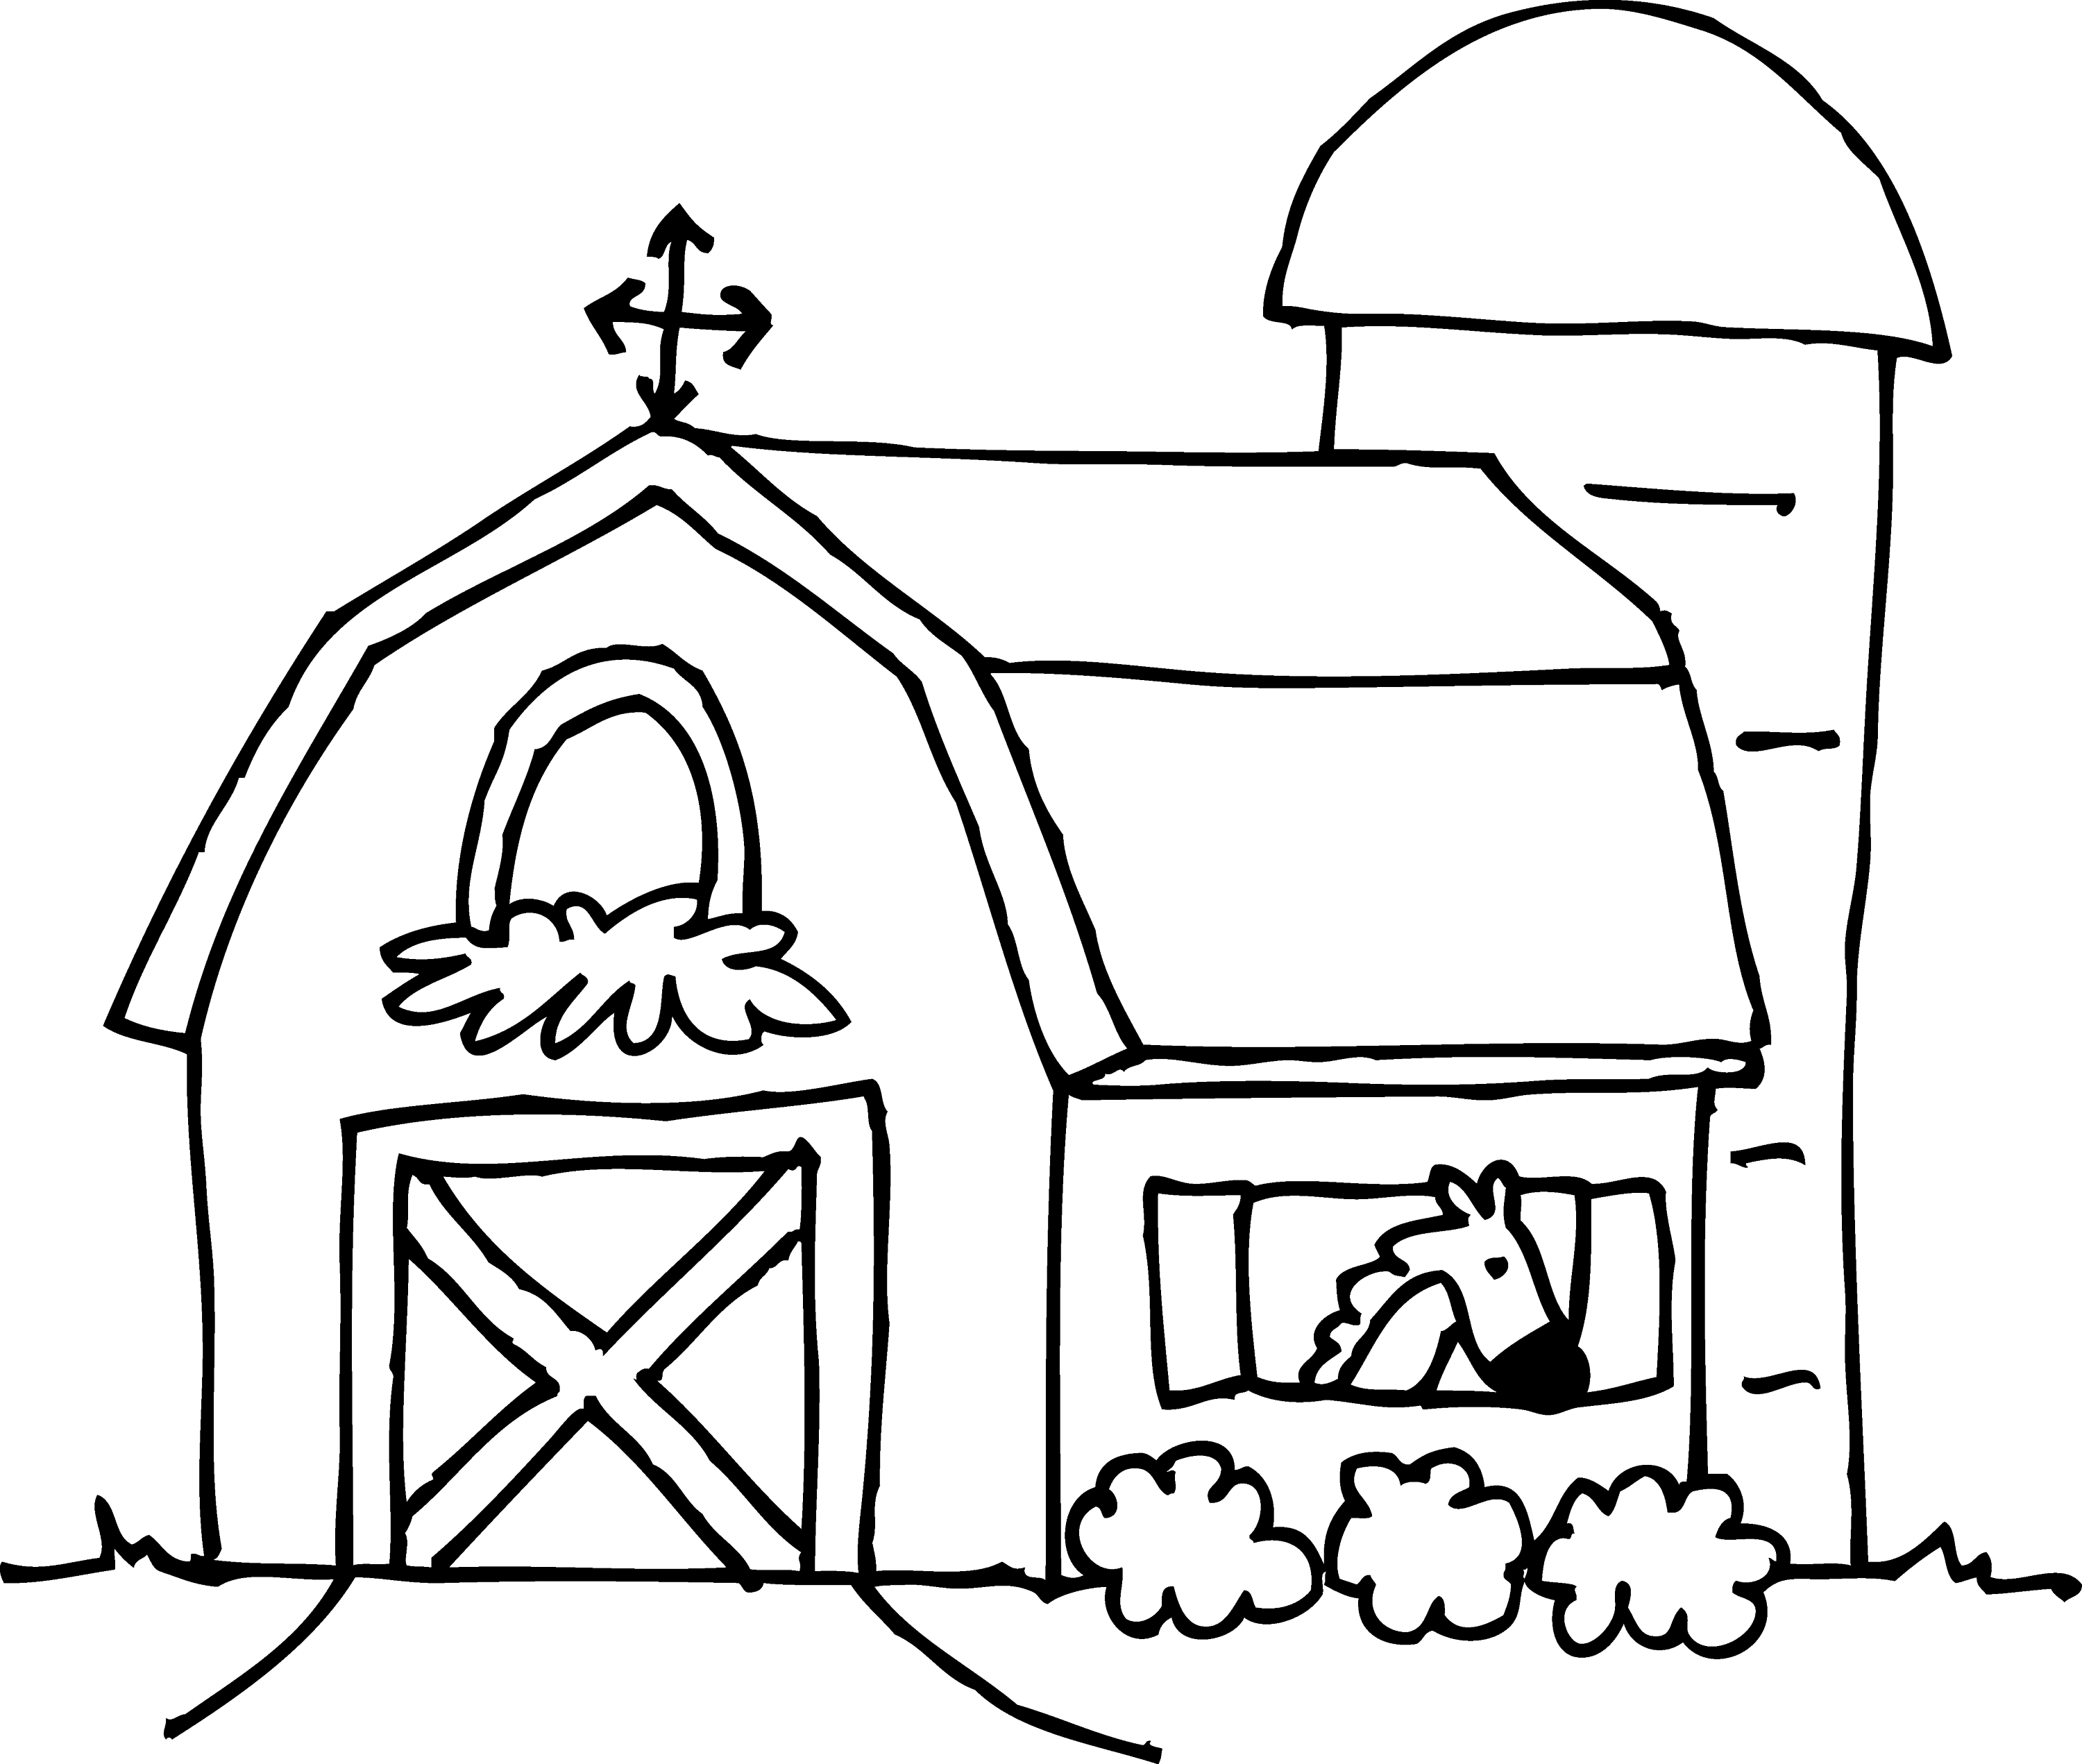 Cute Barn Coloring Page